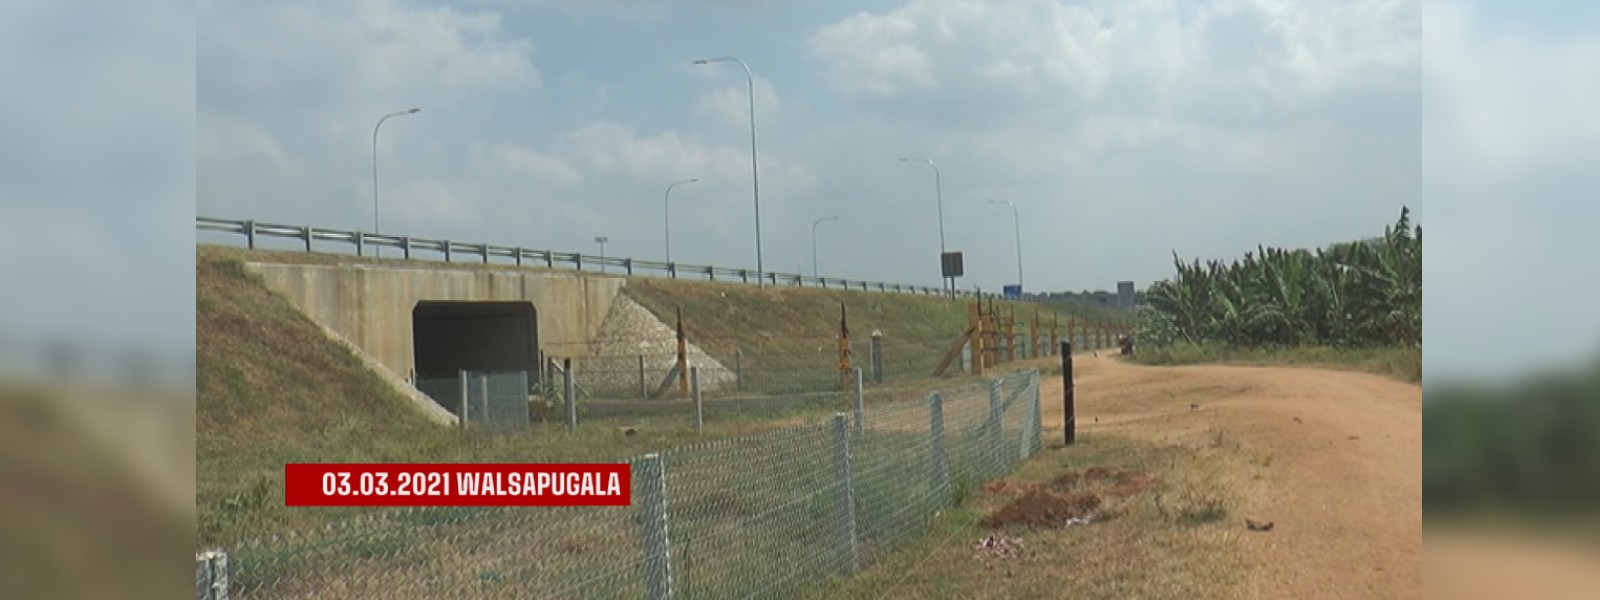 Tense situation arose in Walsapugala due to the installation of an Electric Fence